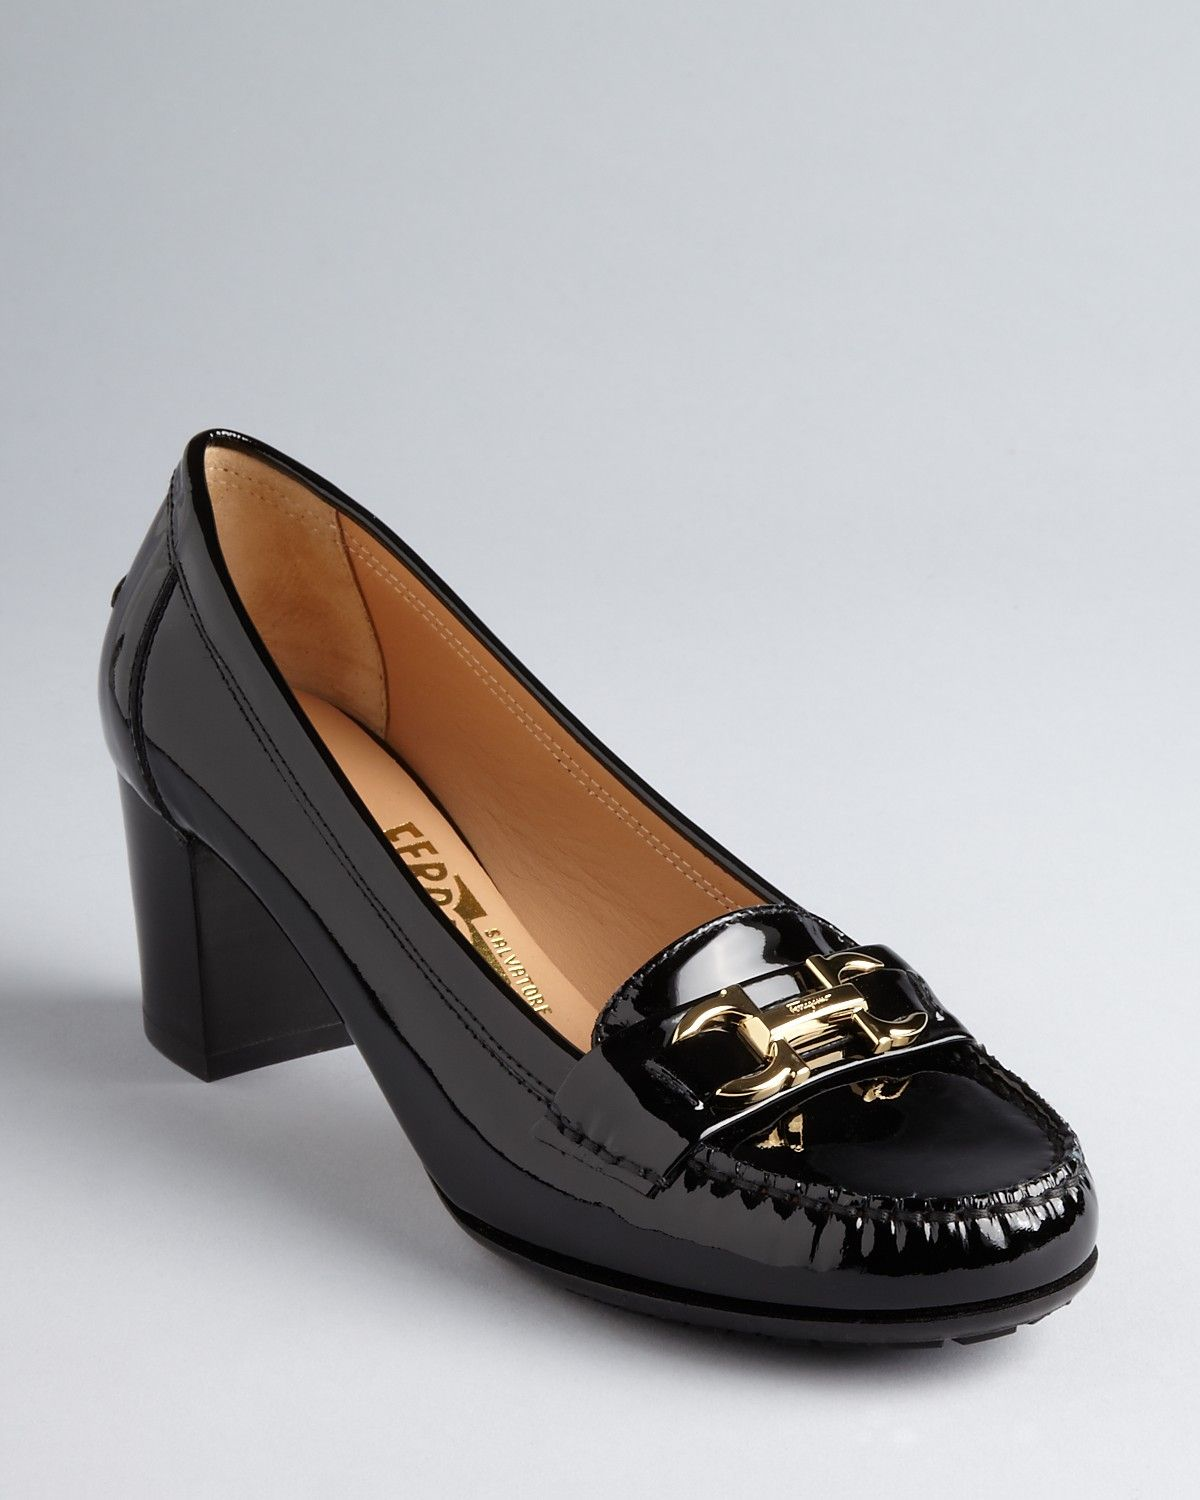 Salvatore Ferragamo Taiga Patent Pumps visit new cheap price free shipping footlocker finishline clearance store cheap price cheap sale sneakernews with paypal online BB51tE